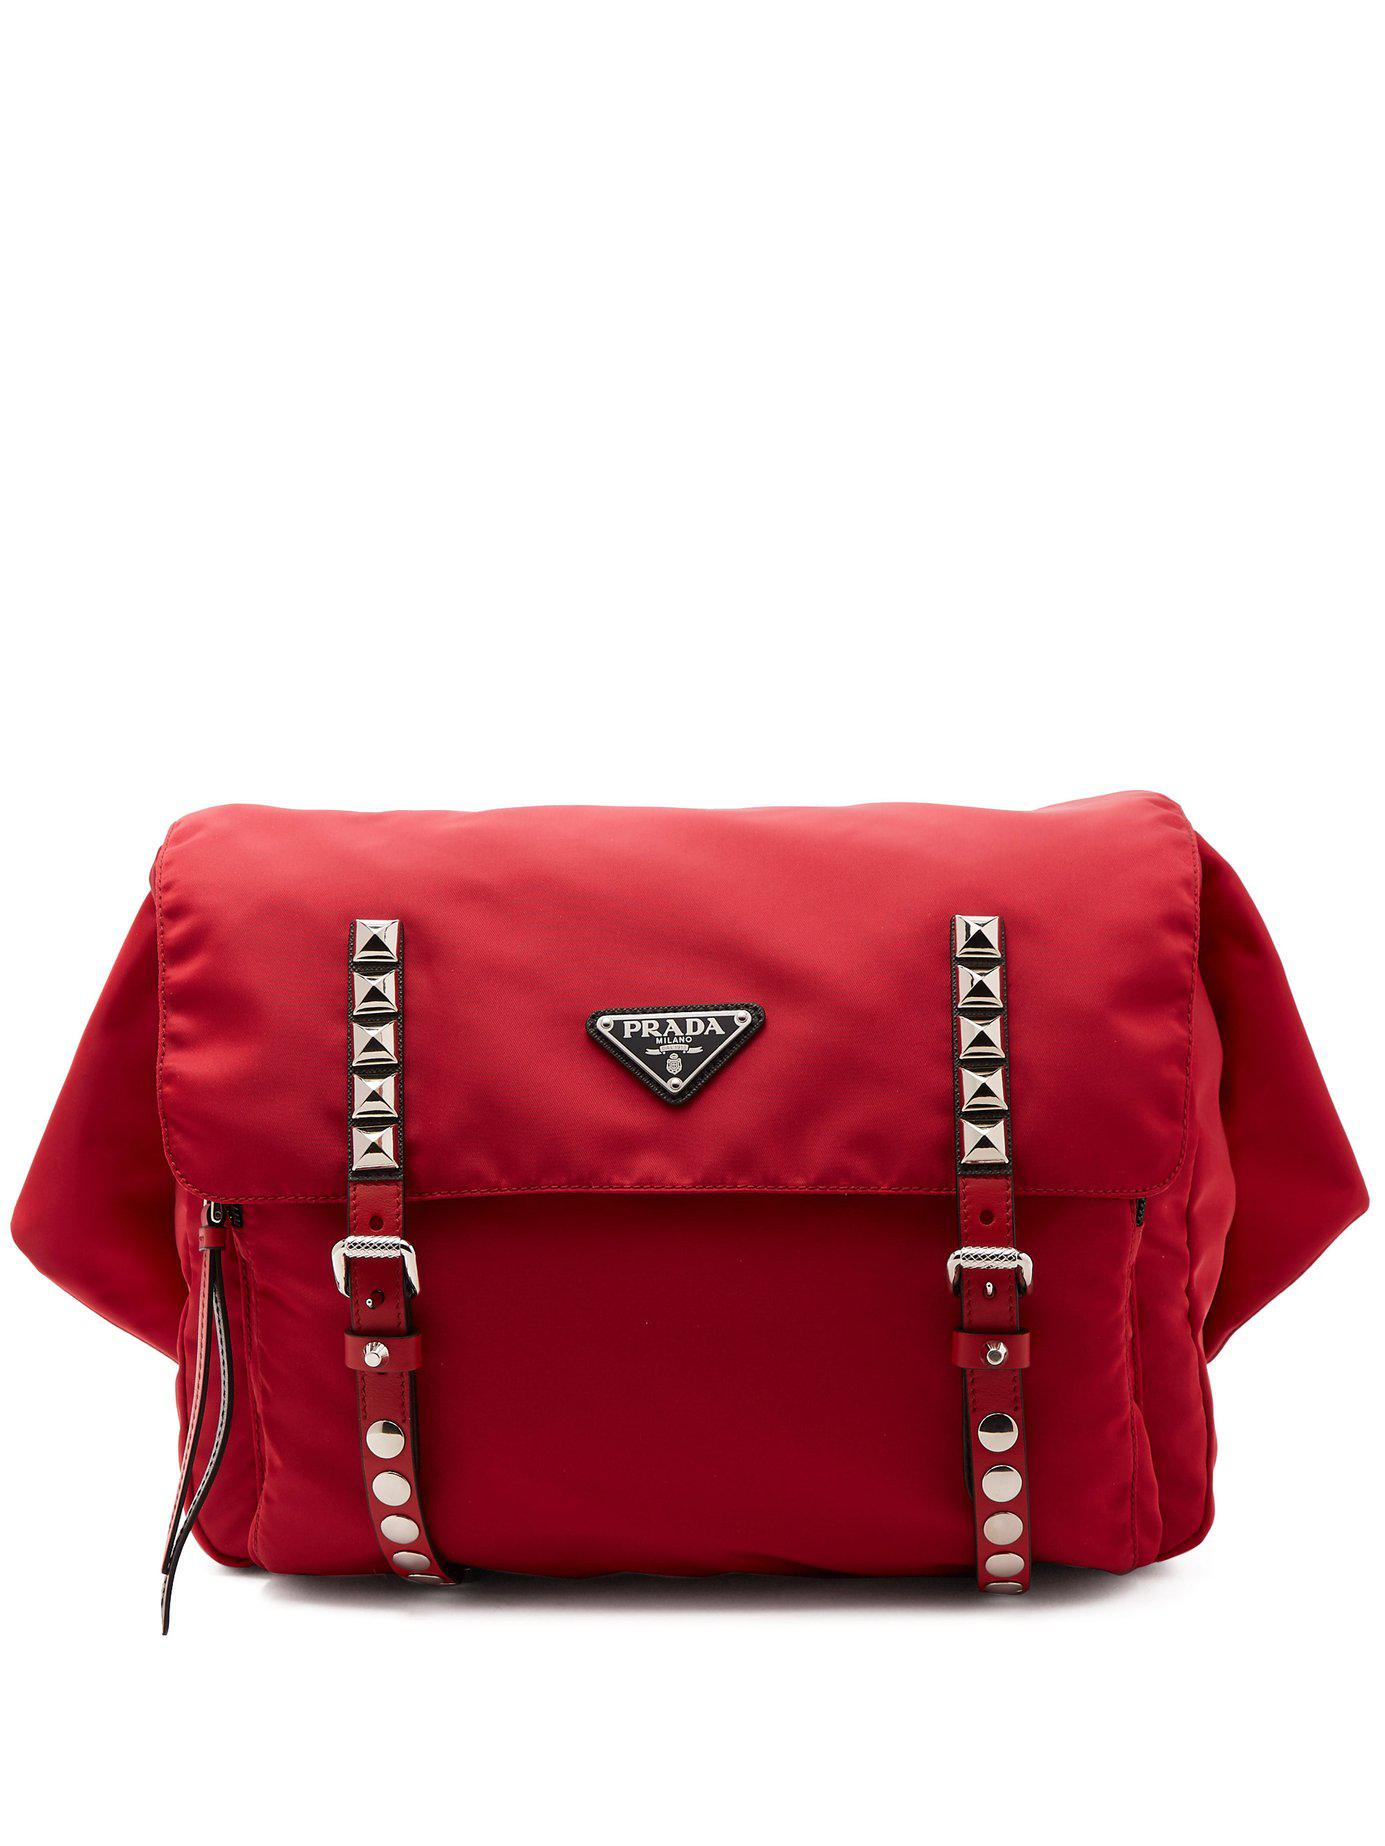 fc734847931aa6 Prada New Vela Leather Trimmed Belt Bag in Red - Lyst